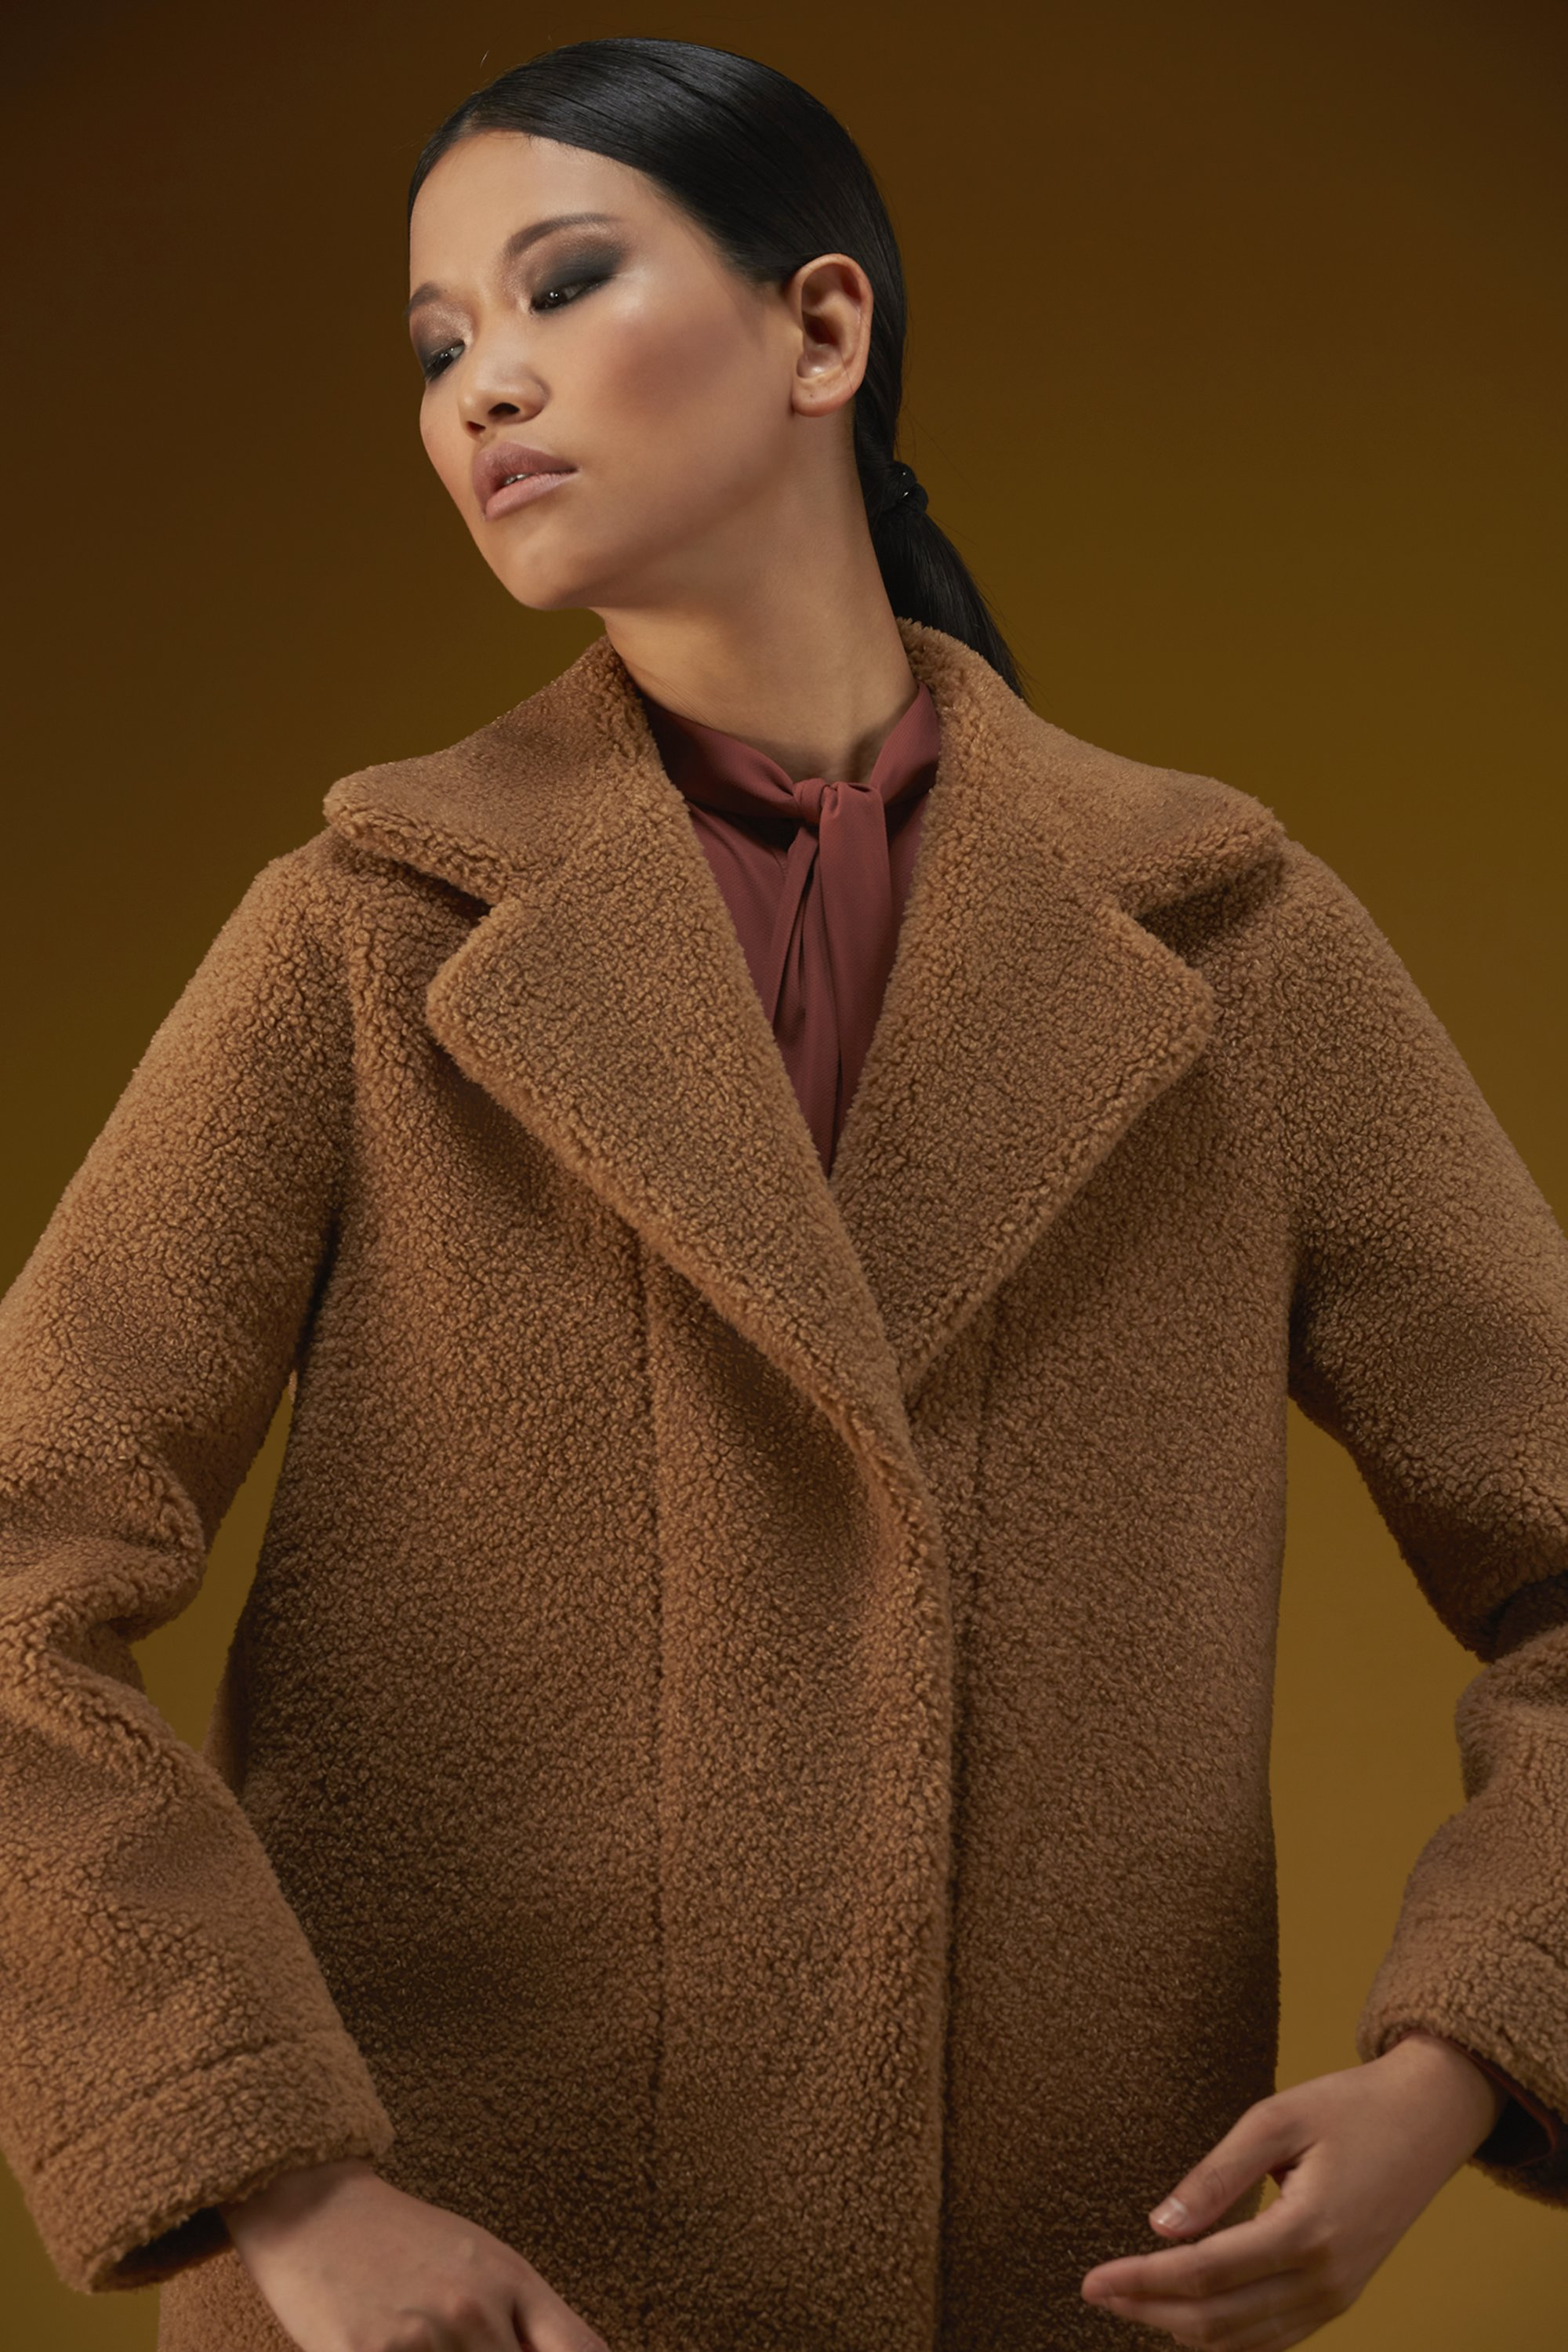 SHOPPING ON LINE RRD LAMB COAT LADY NEW COLLECTION  WOMEN'S FALL/WINTER 2022-2